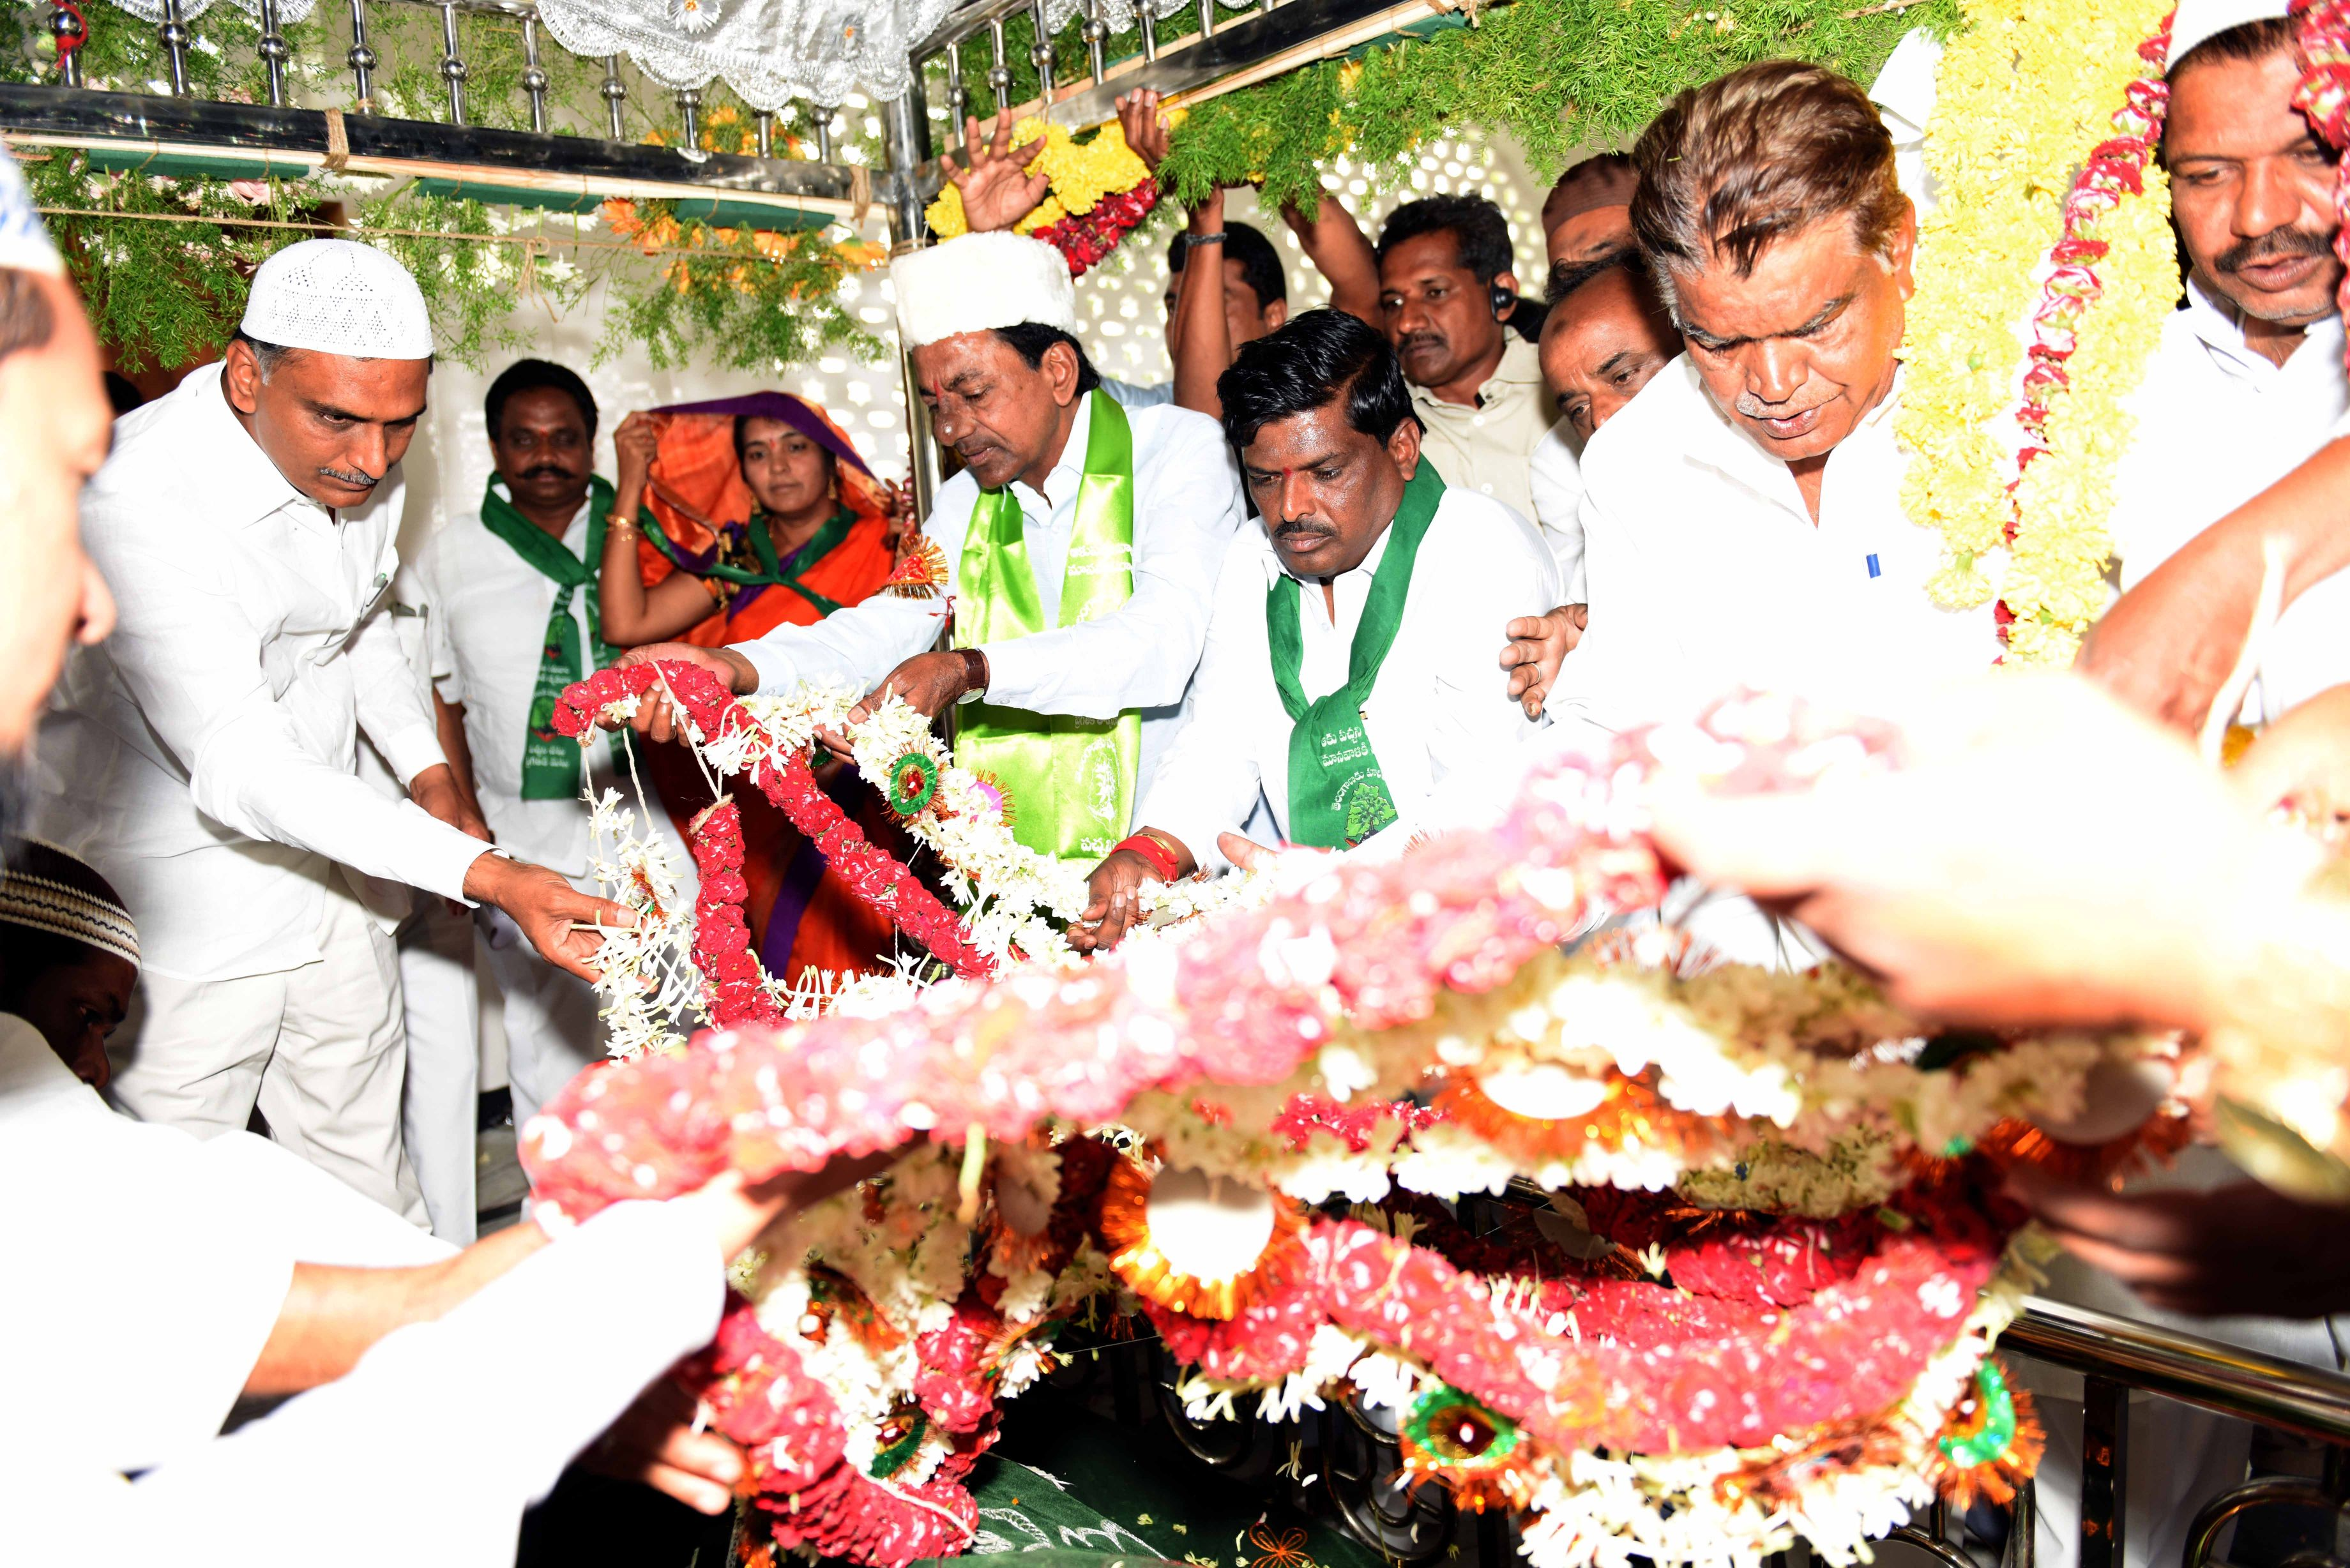 TS CHIEF MINISTER K.CHANDRASHEKHAR RAO VISITED HAZART SYED MURAD ALI SHAH SAHEB DARGAH PATANCHERU AND ALSO PARTICIPATED TREE PLANTATION PROGRAMME ON 11-7-2015.